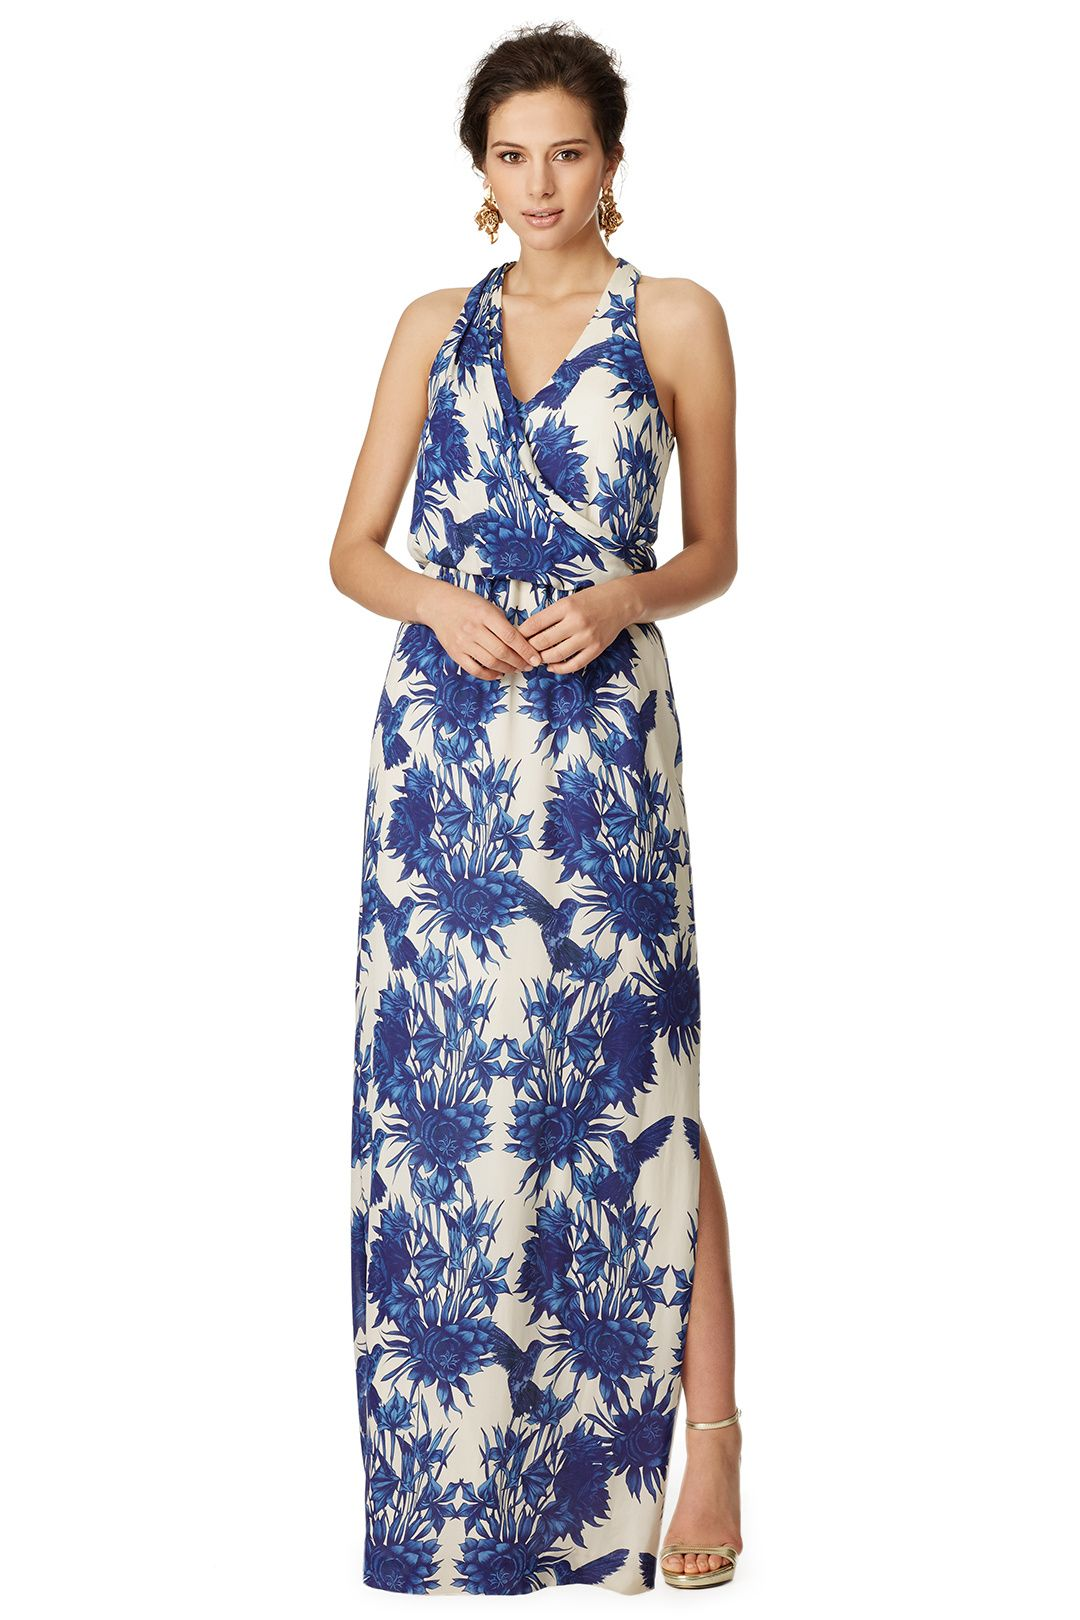 Vineyard Dress by Nicole Miller for $85 | Rent The Runway